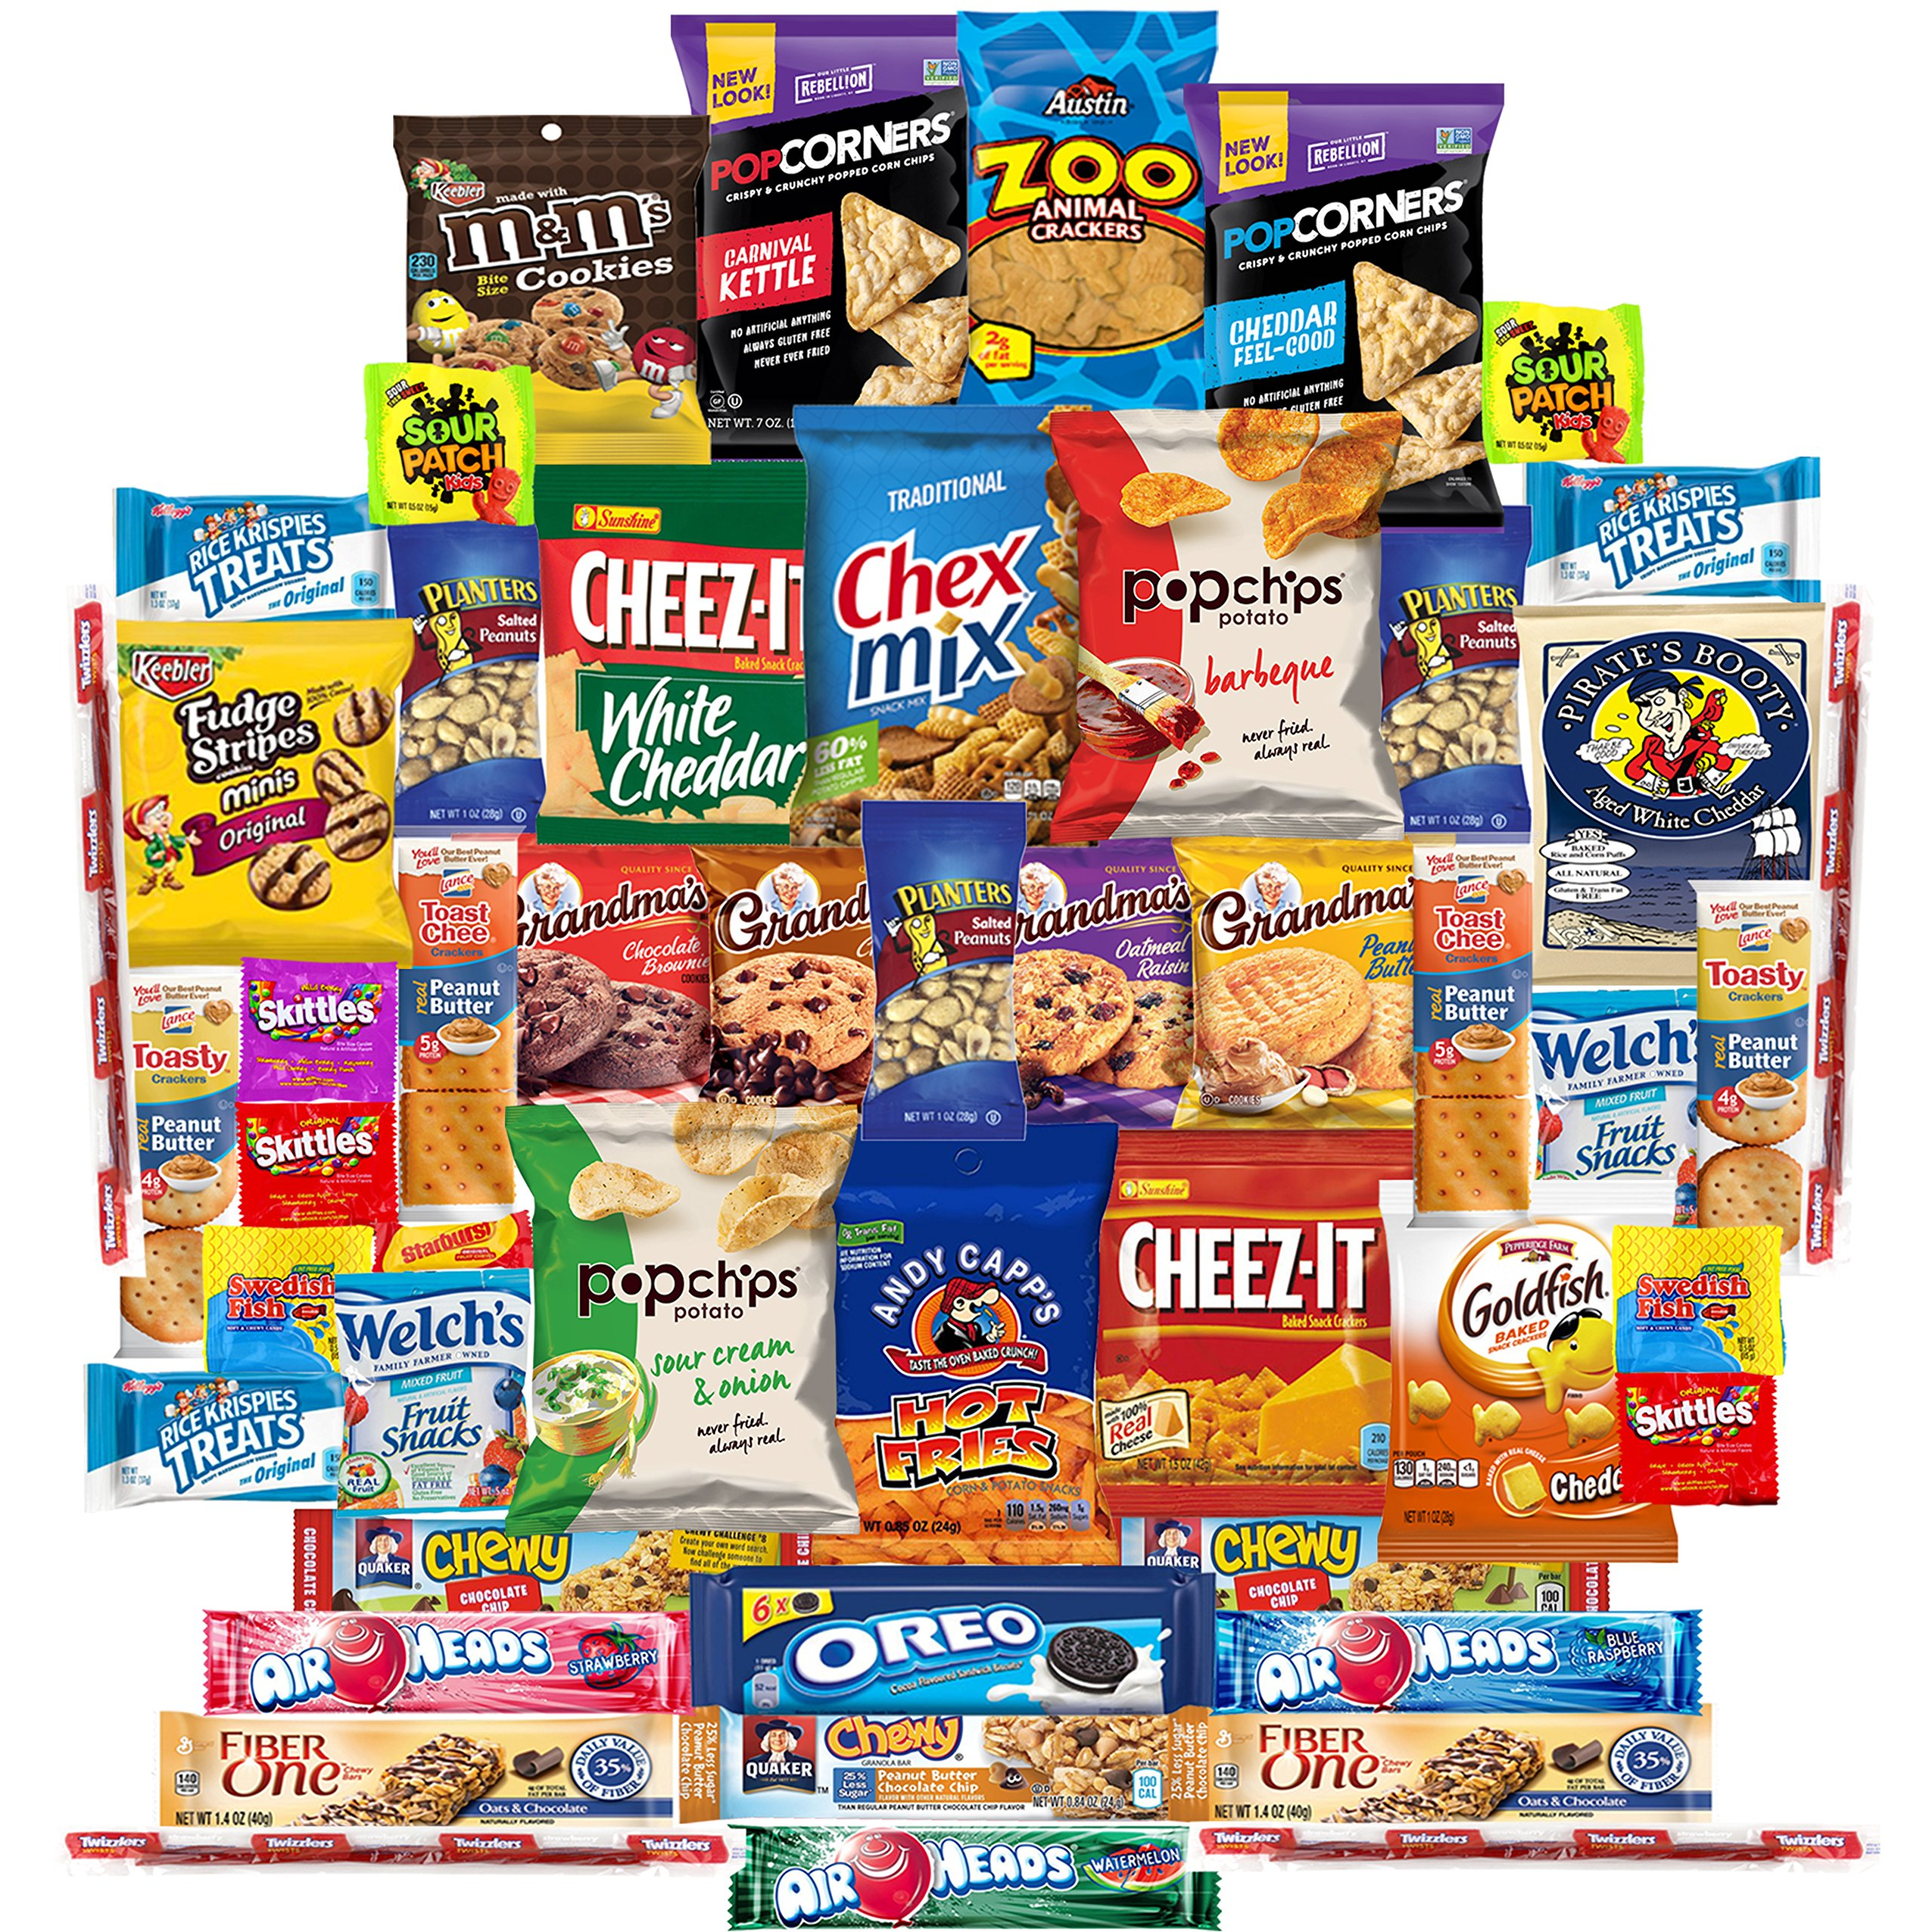 Munchies Care Package Chips Cookies & Candy Includes Goldfish, Oreos, Skittles, Sour Patch, m&m Cookie, Air Heads, Planters Peanuts, Rice Krispies & More (50 Count)